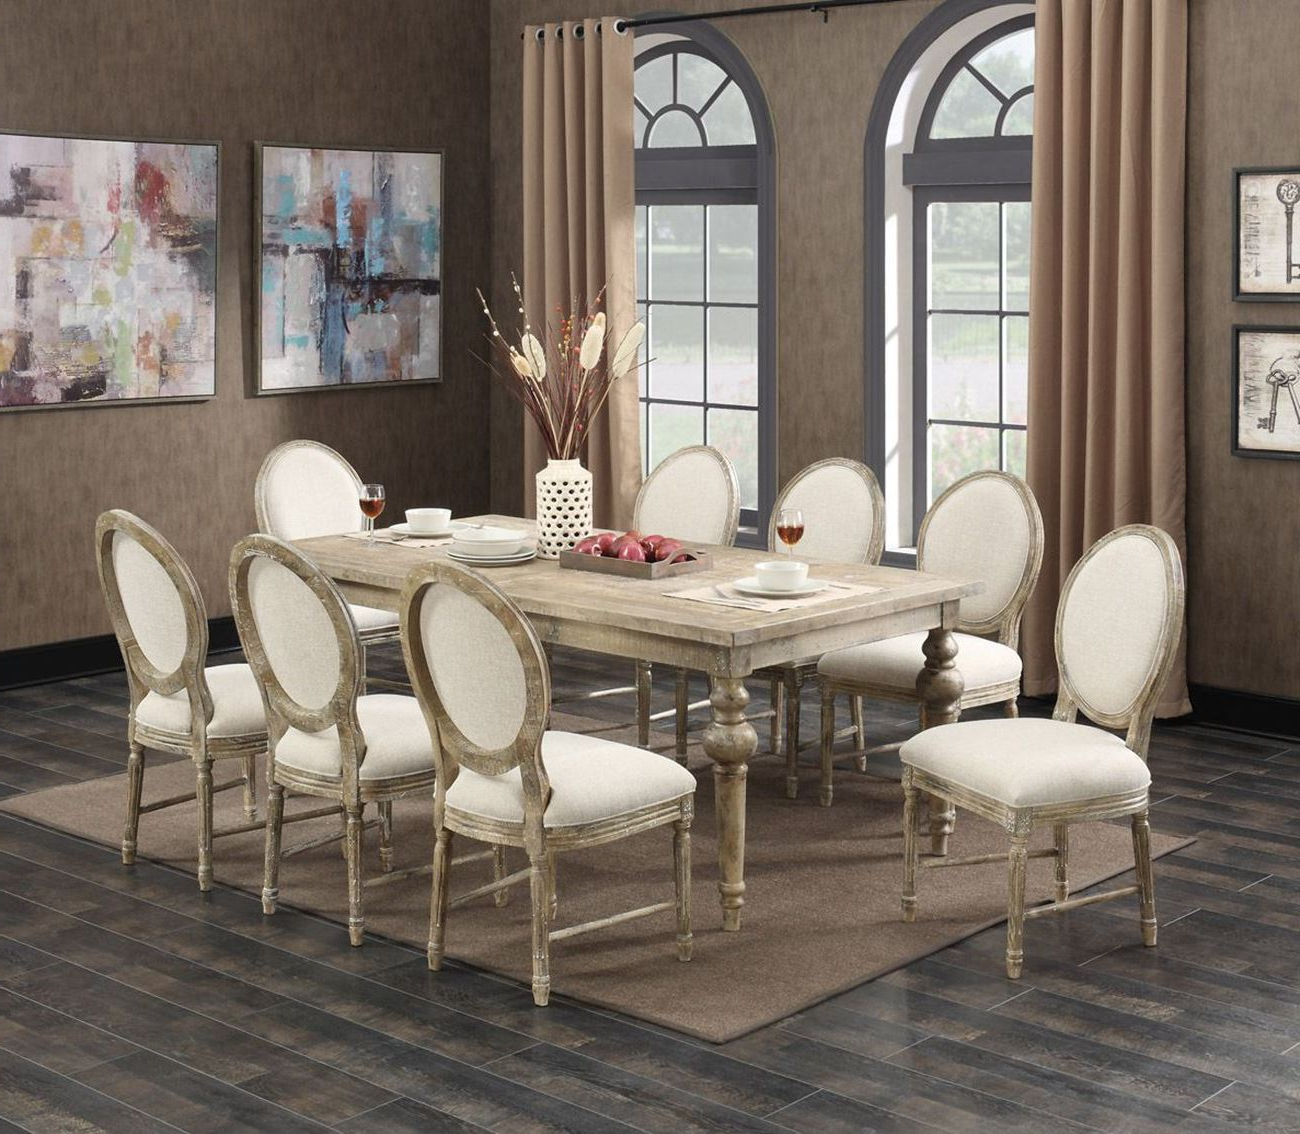 5 Piece Dining Sets Within Well Known Interlude 5 Piece Dining Set (View 8 of 20)